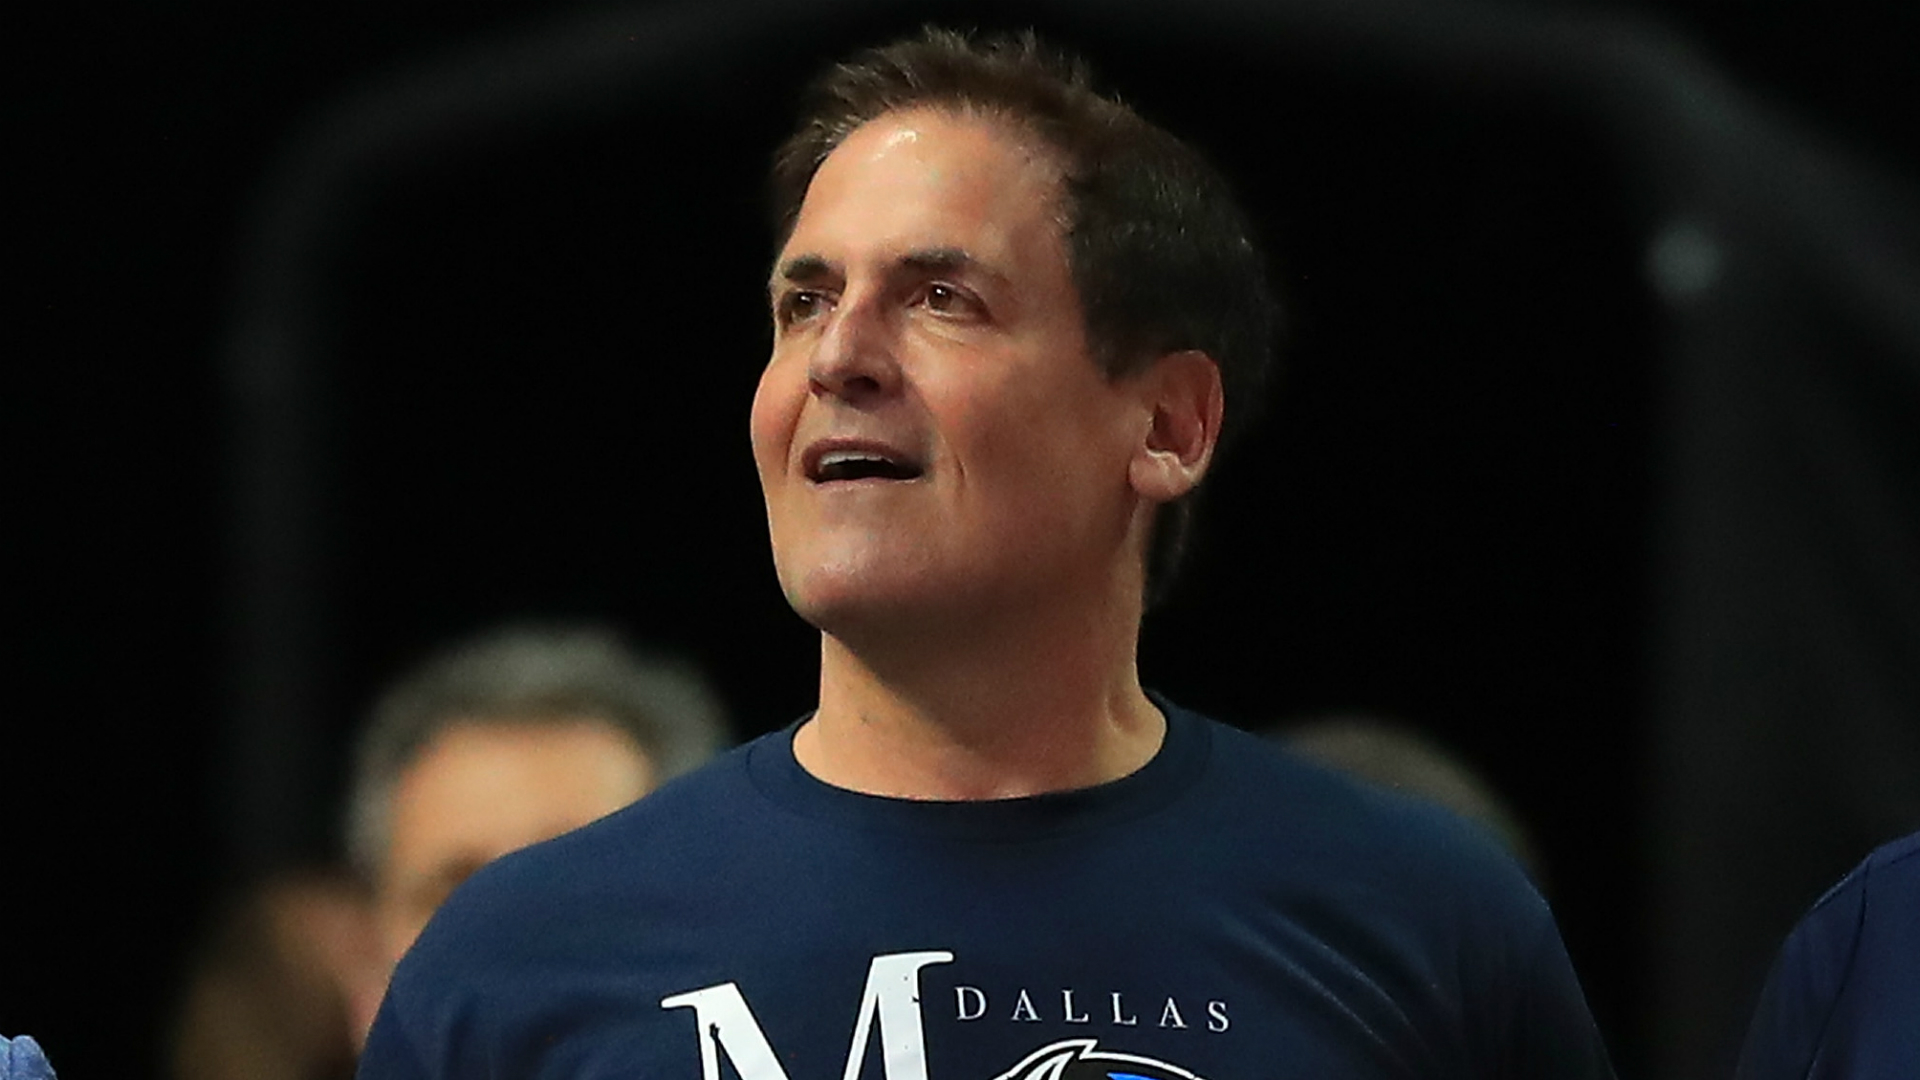 Mavericks owner Mark Cuban weighs in on NFL issues